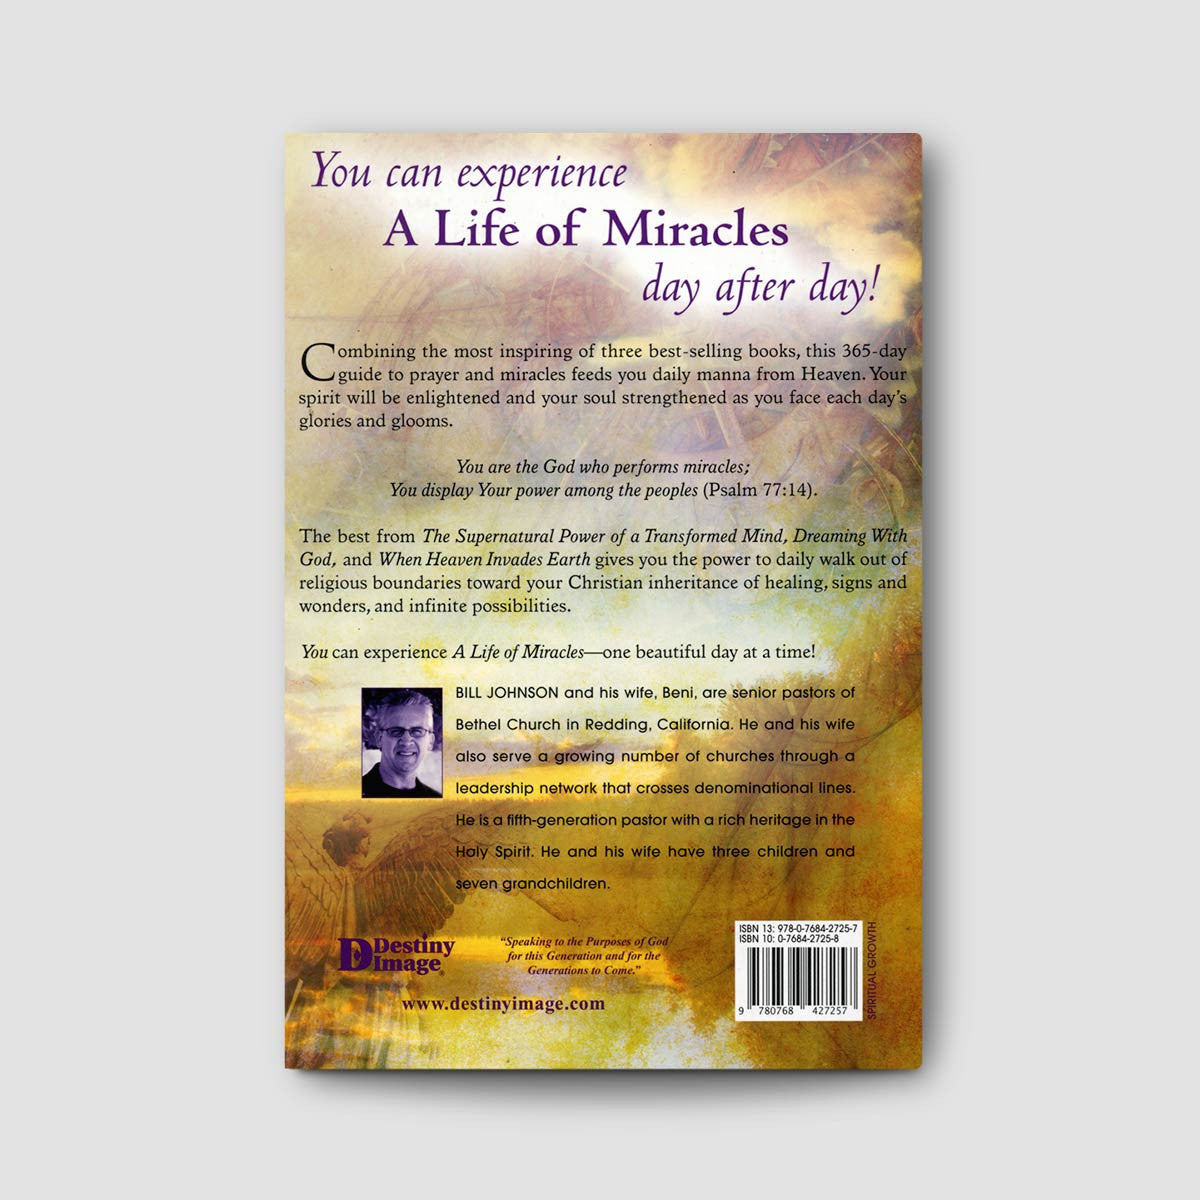 A Life of Miracles: A 365 day guide to prayer and miracles